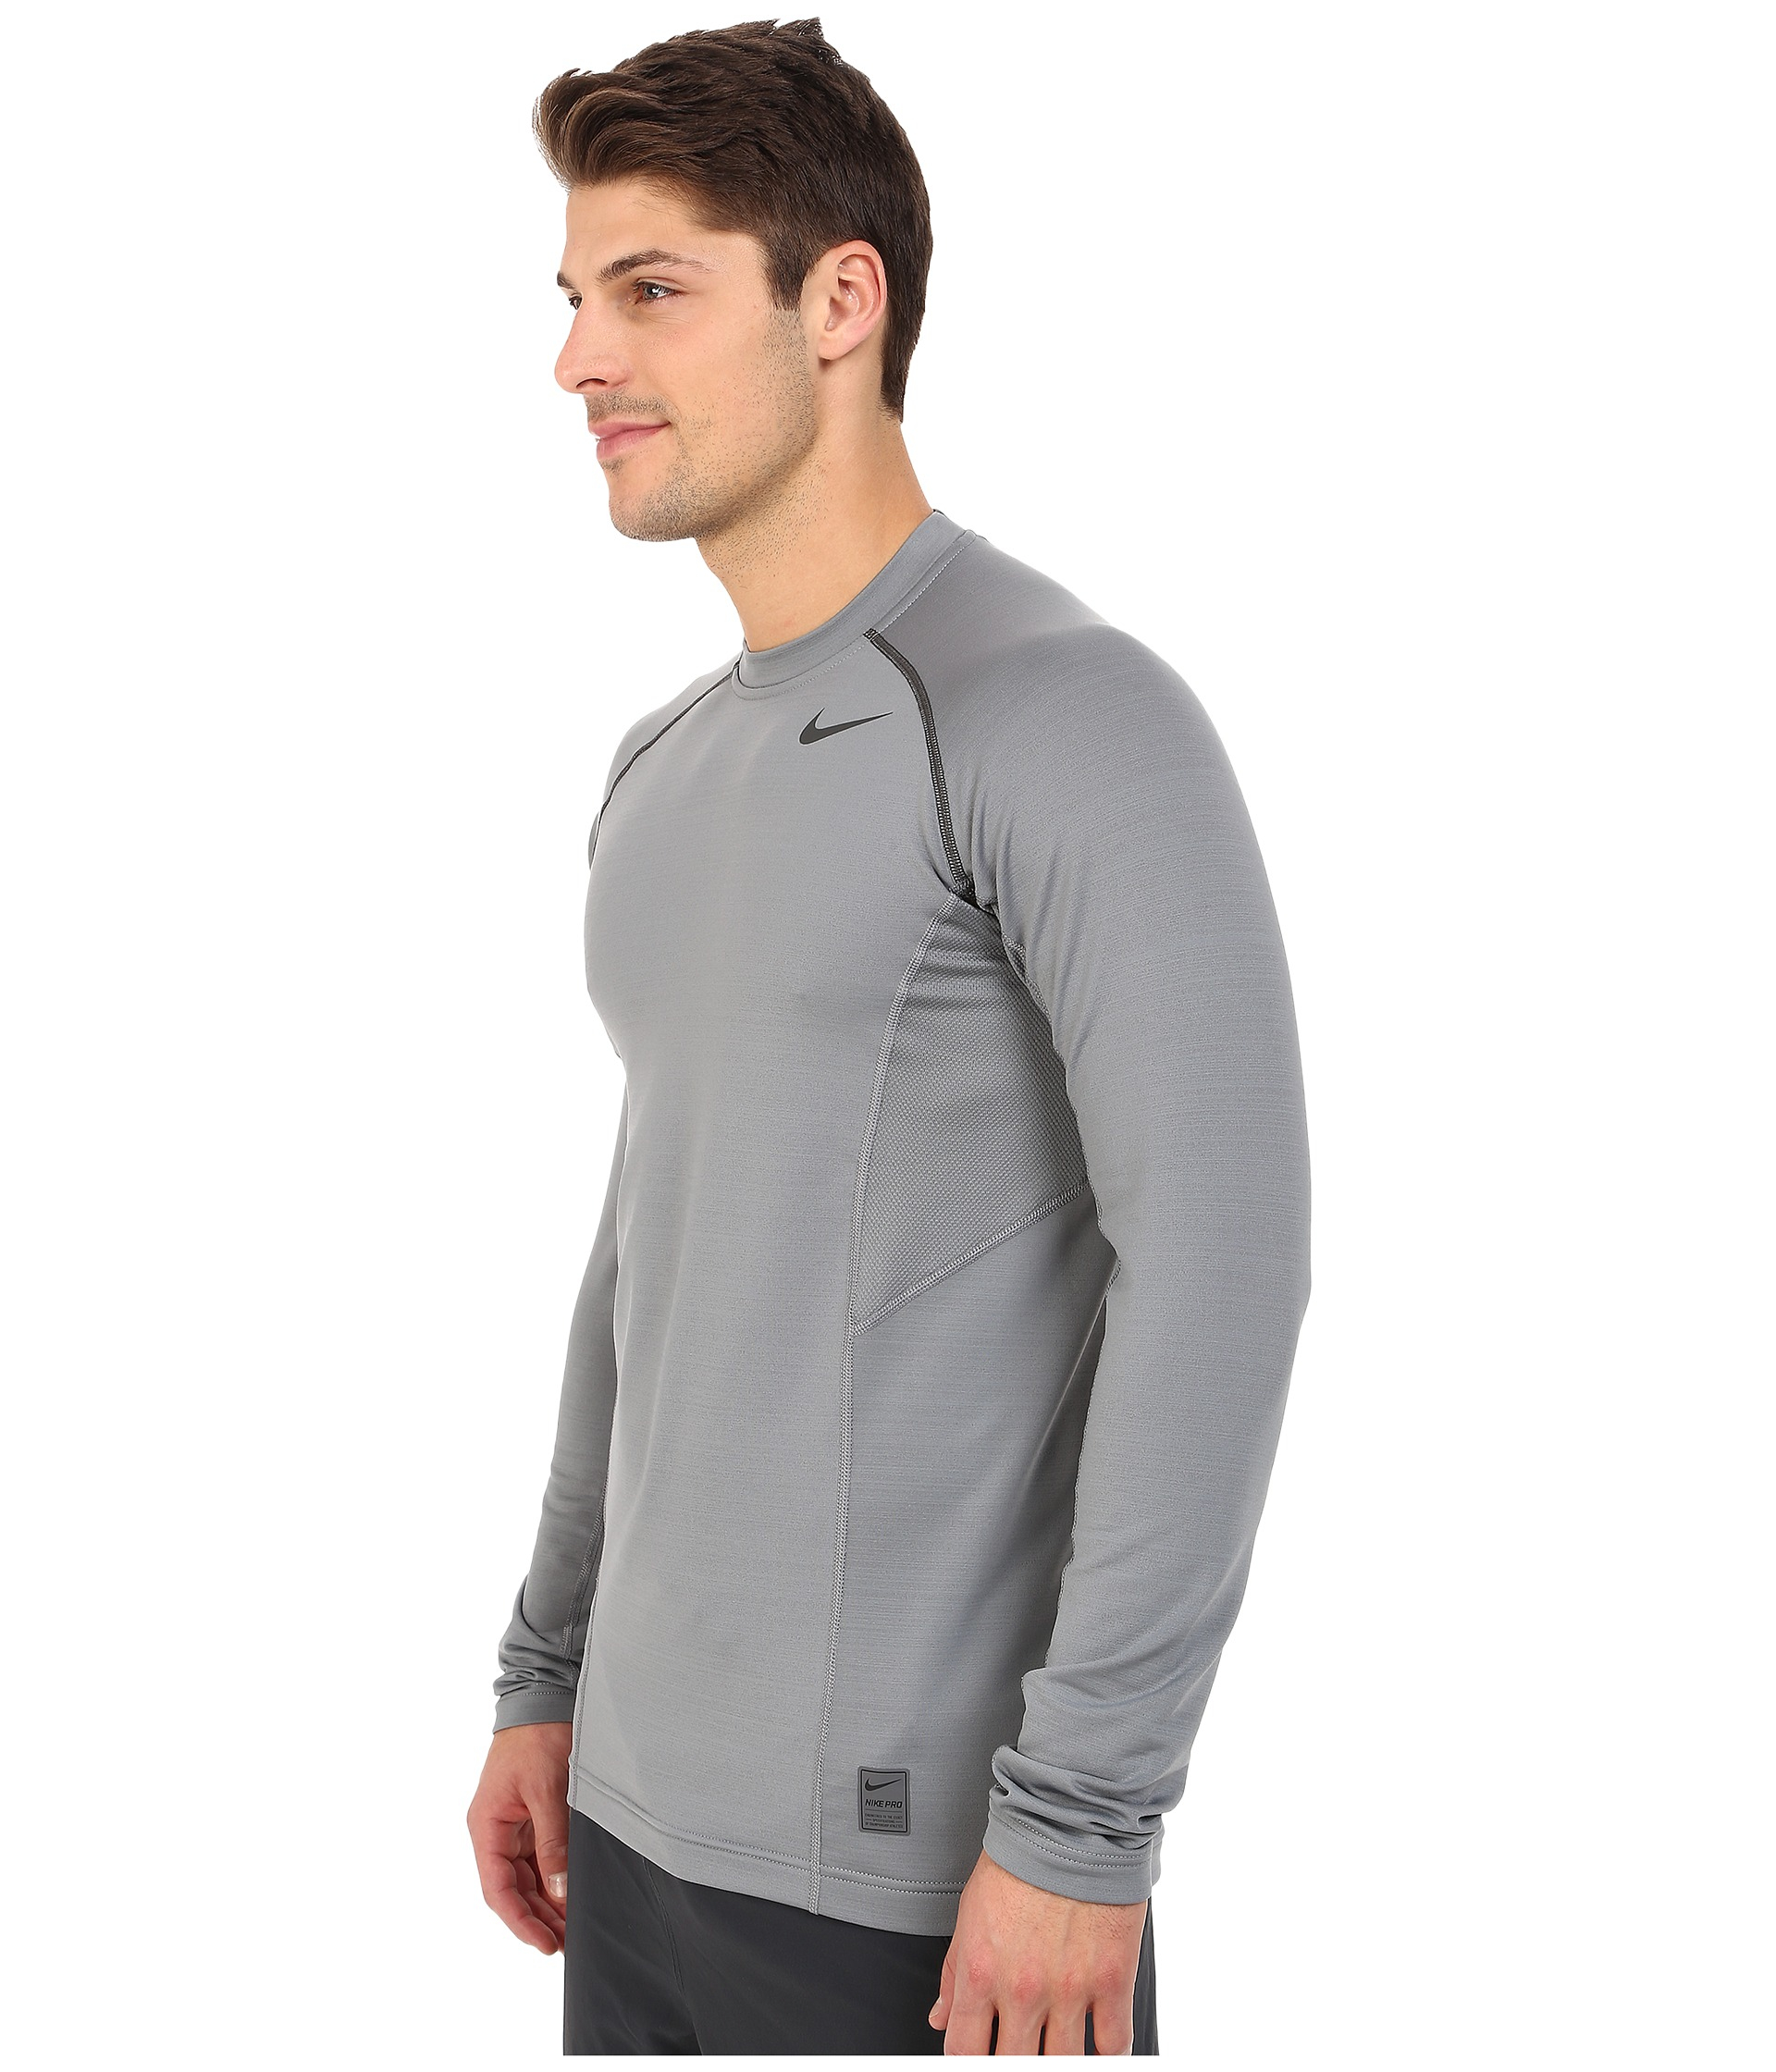 de812ac0 Nike Hyperwarm Dri-fit™ Max Fitted Long Sleeve Top in Gray for Men ...